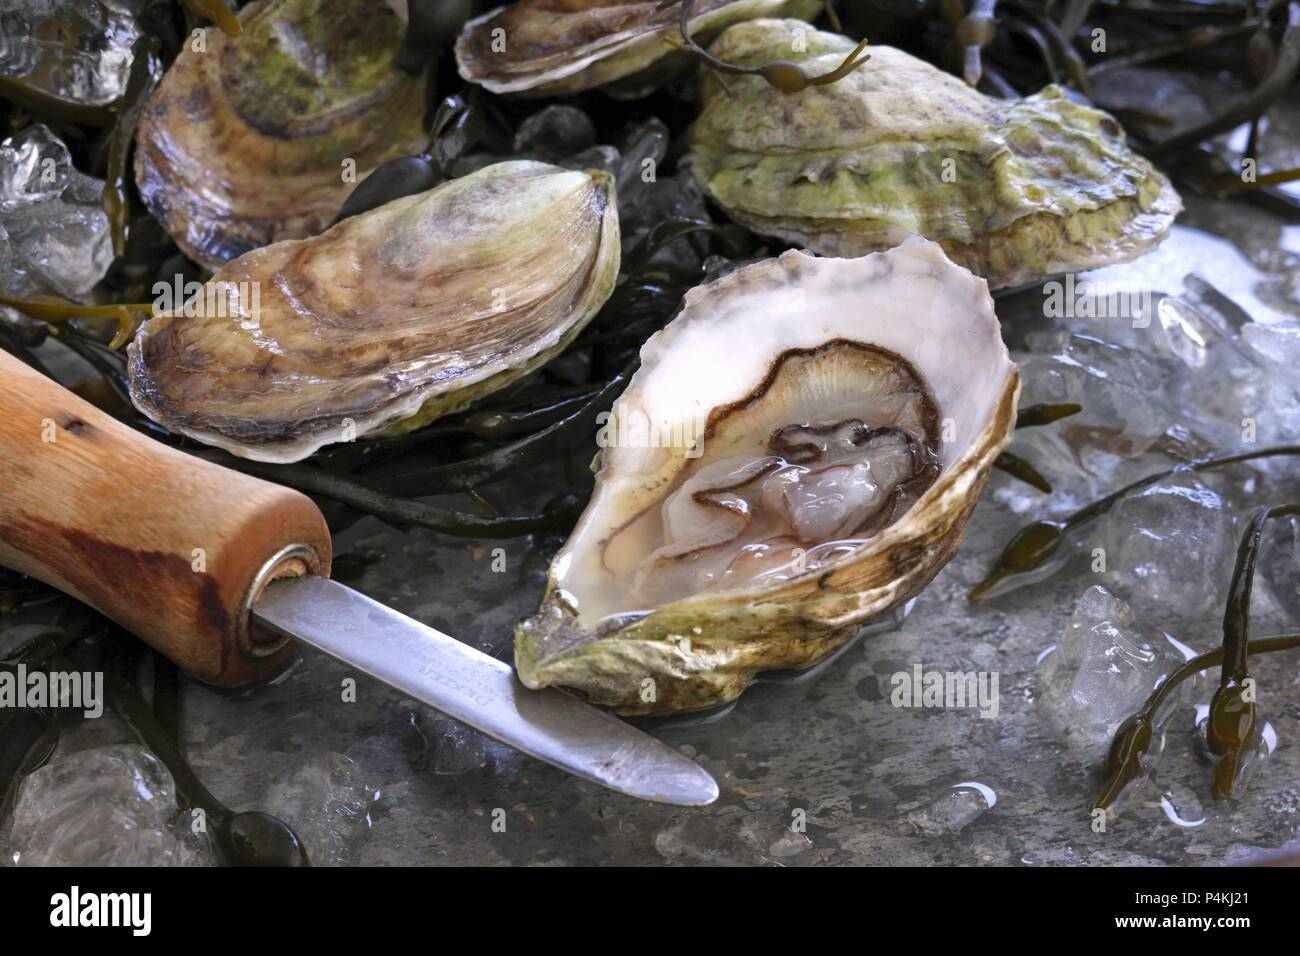 Fresh Oysters on Ice - Stock Image